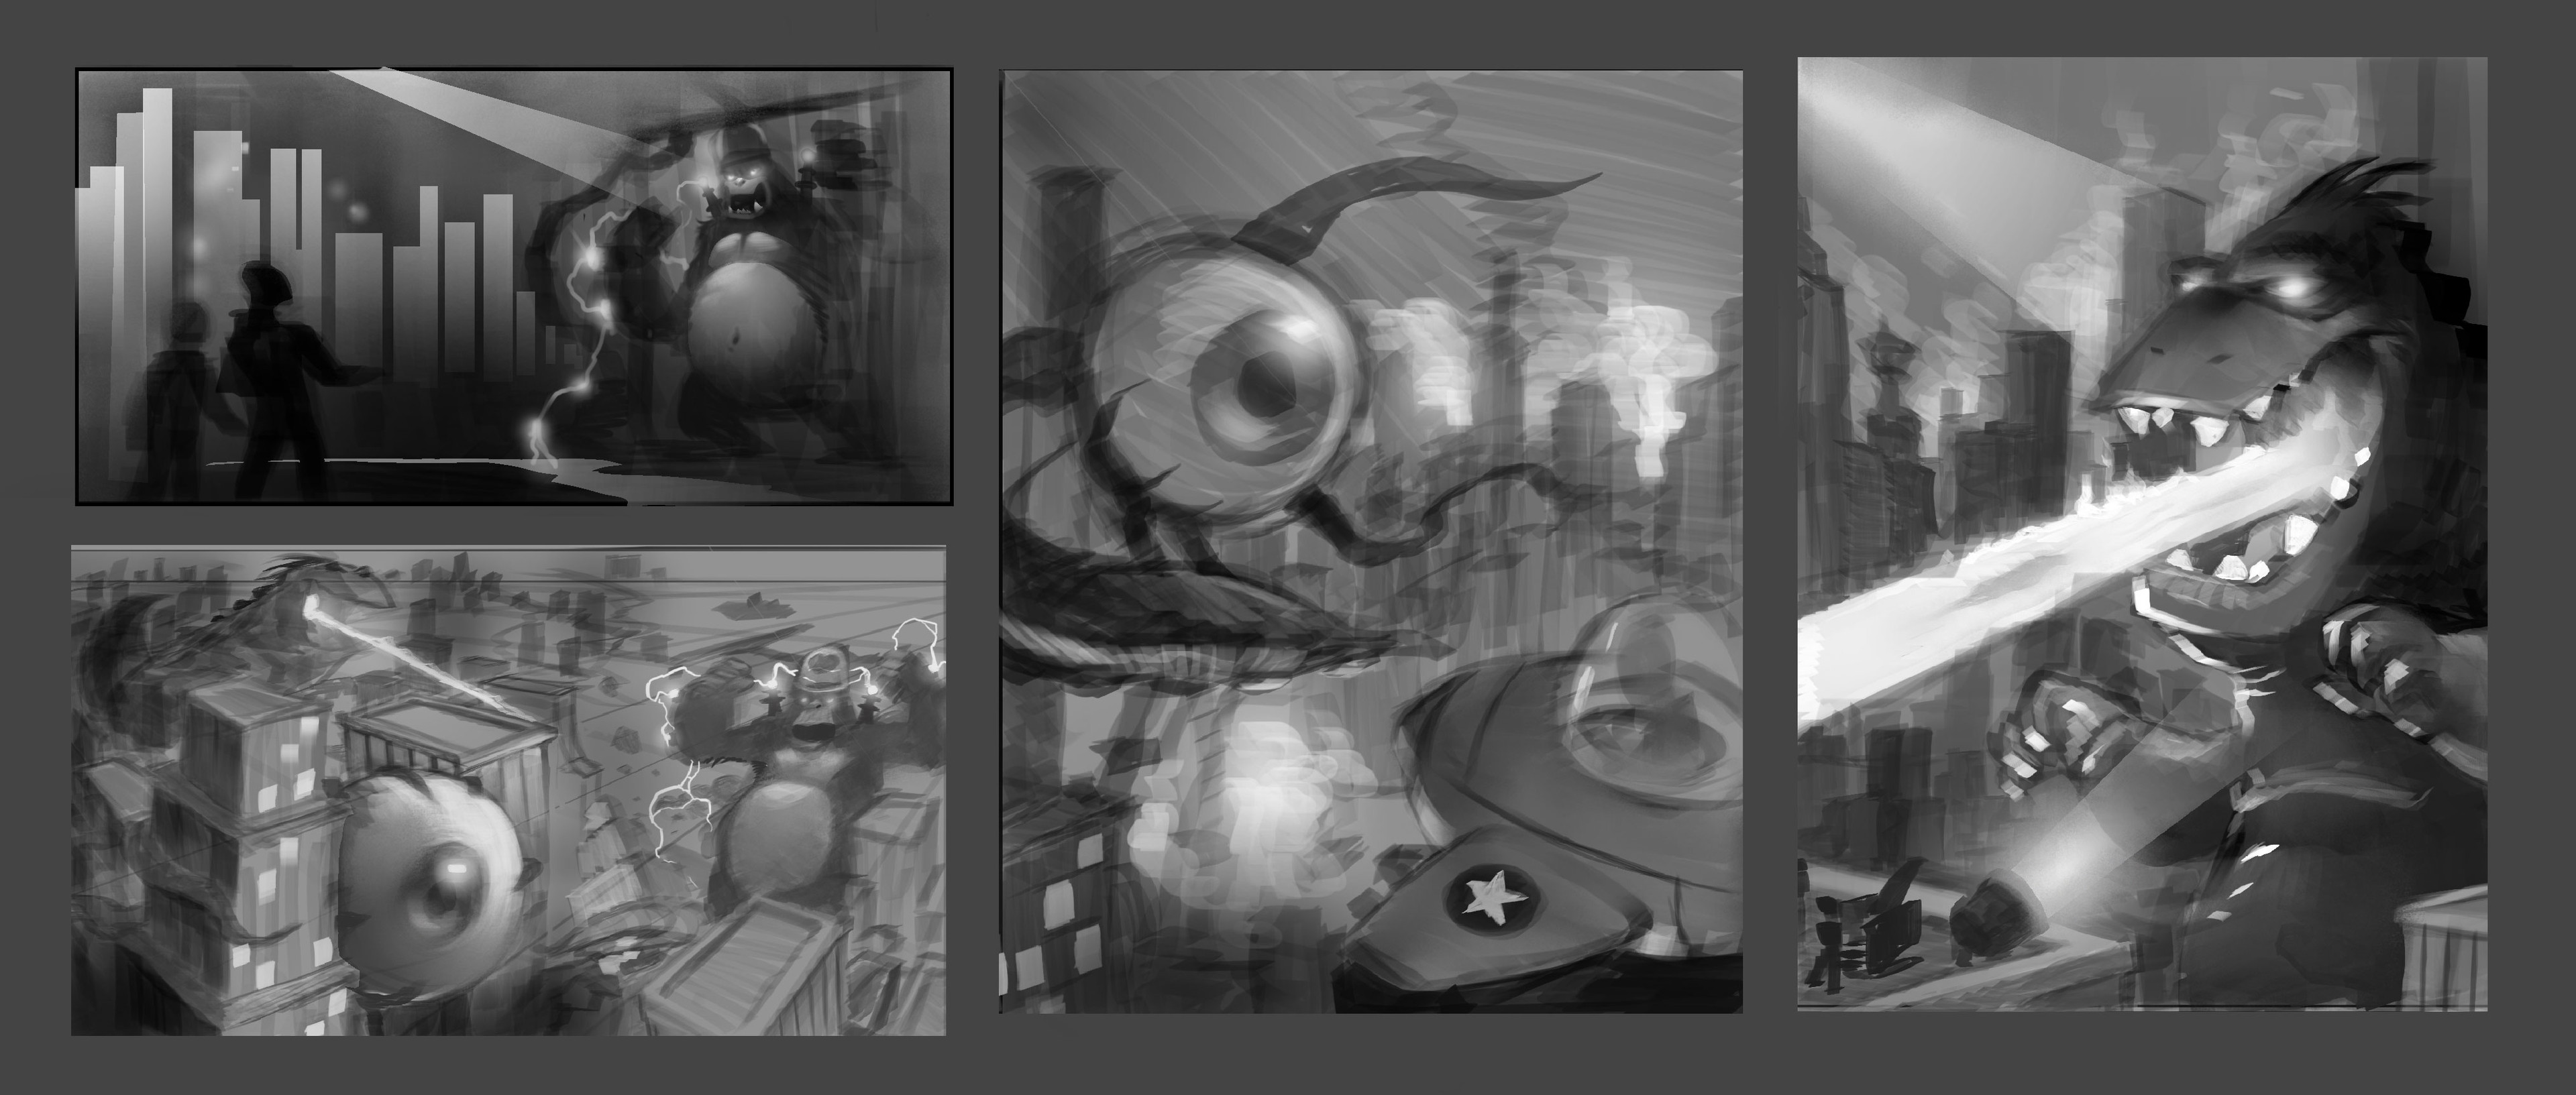 Mood thumbnails to capture the essence of the world, story and feel of the gameplay.